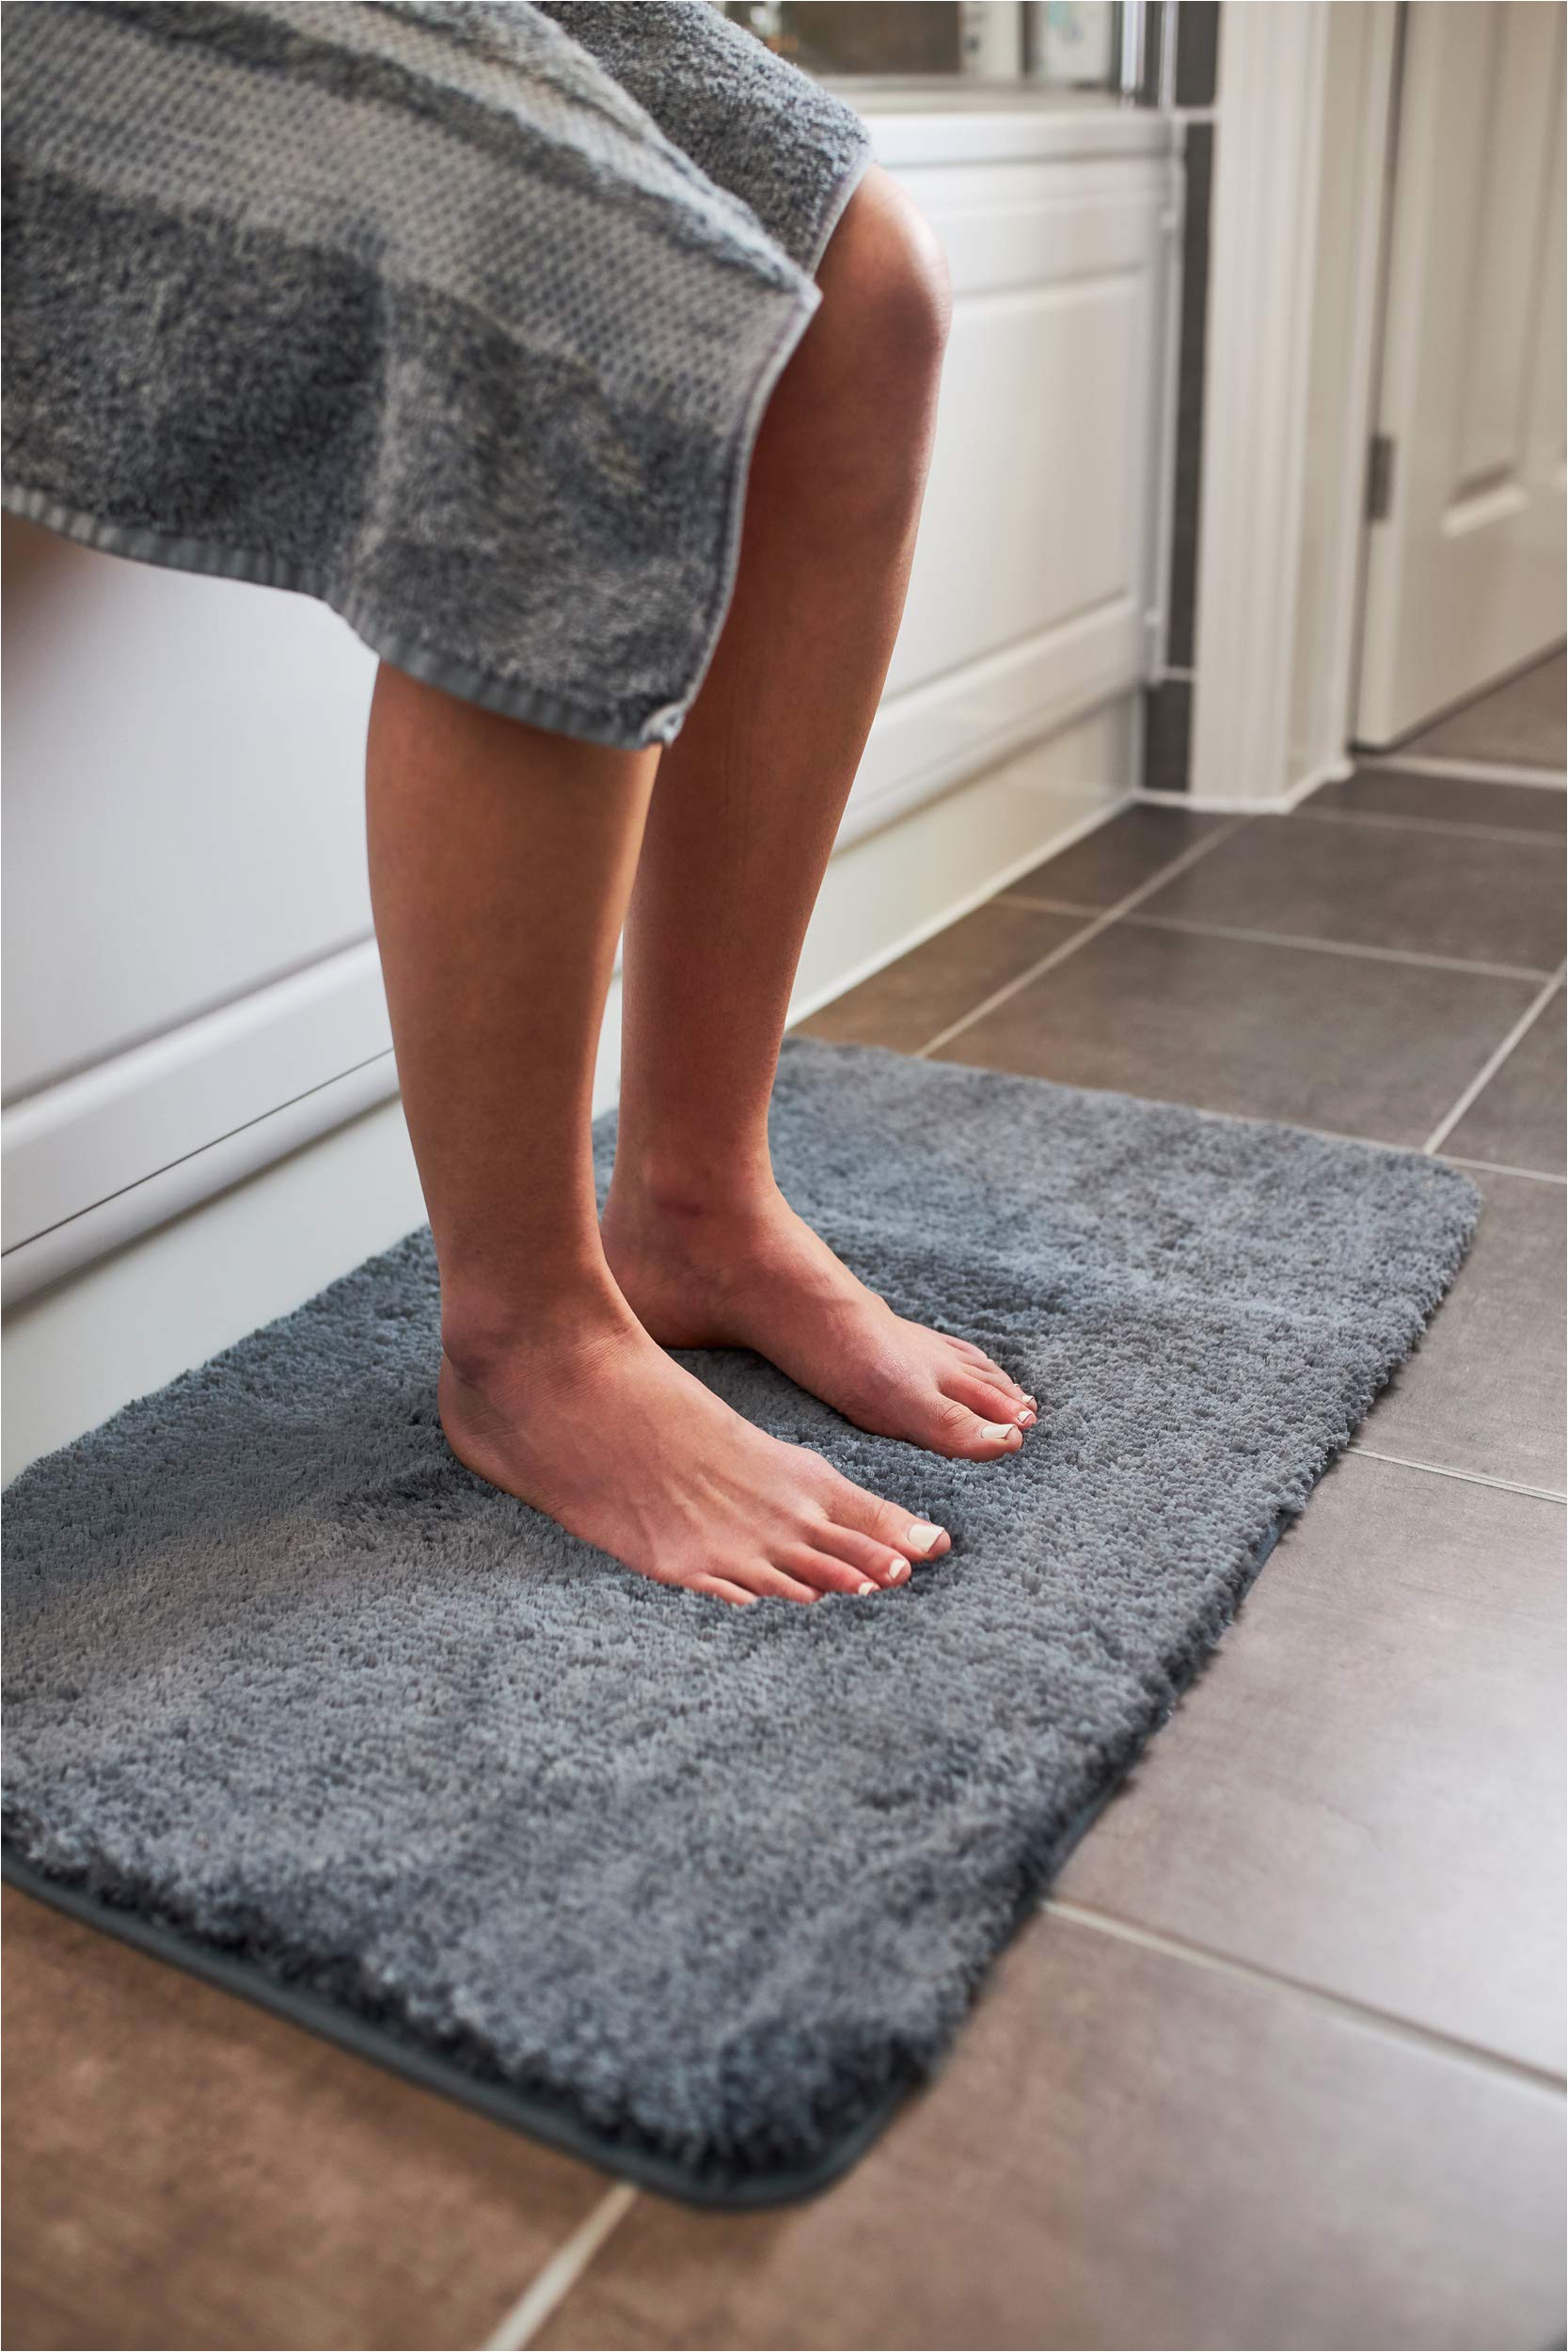 Light Grey Bath Rug Luxury Grey Bath Mat Microfiber Non Slip Bath Rug with Super soft Absorbent Dry Fast Design for Bath and Shower